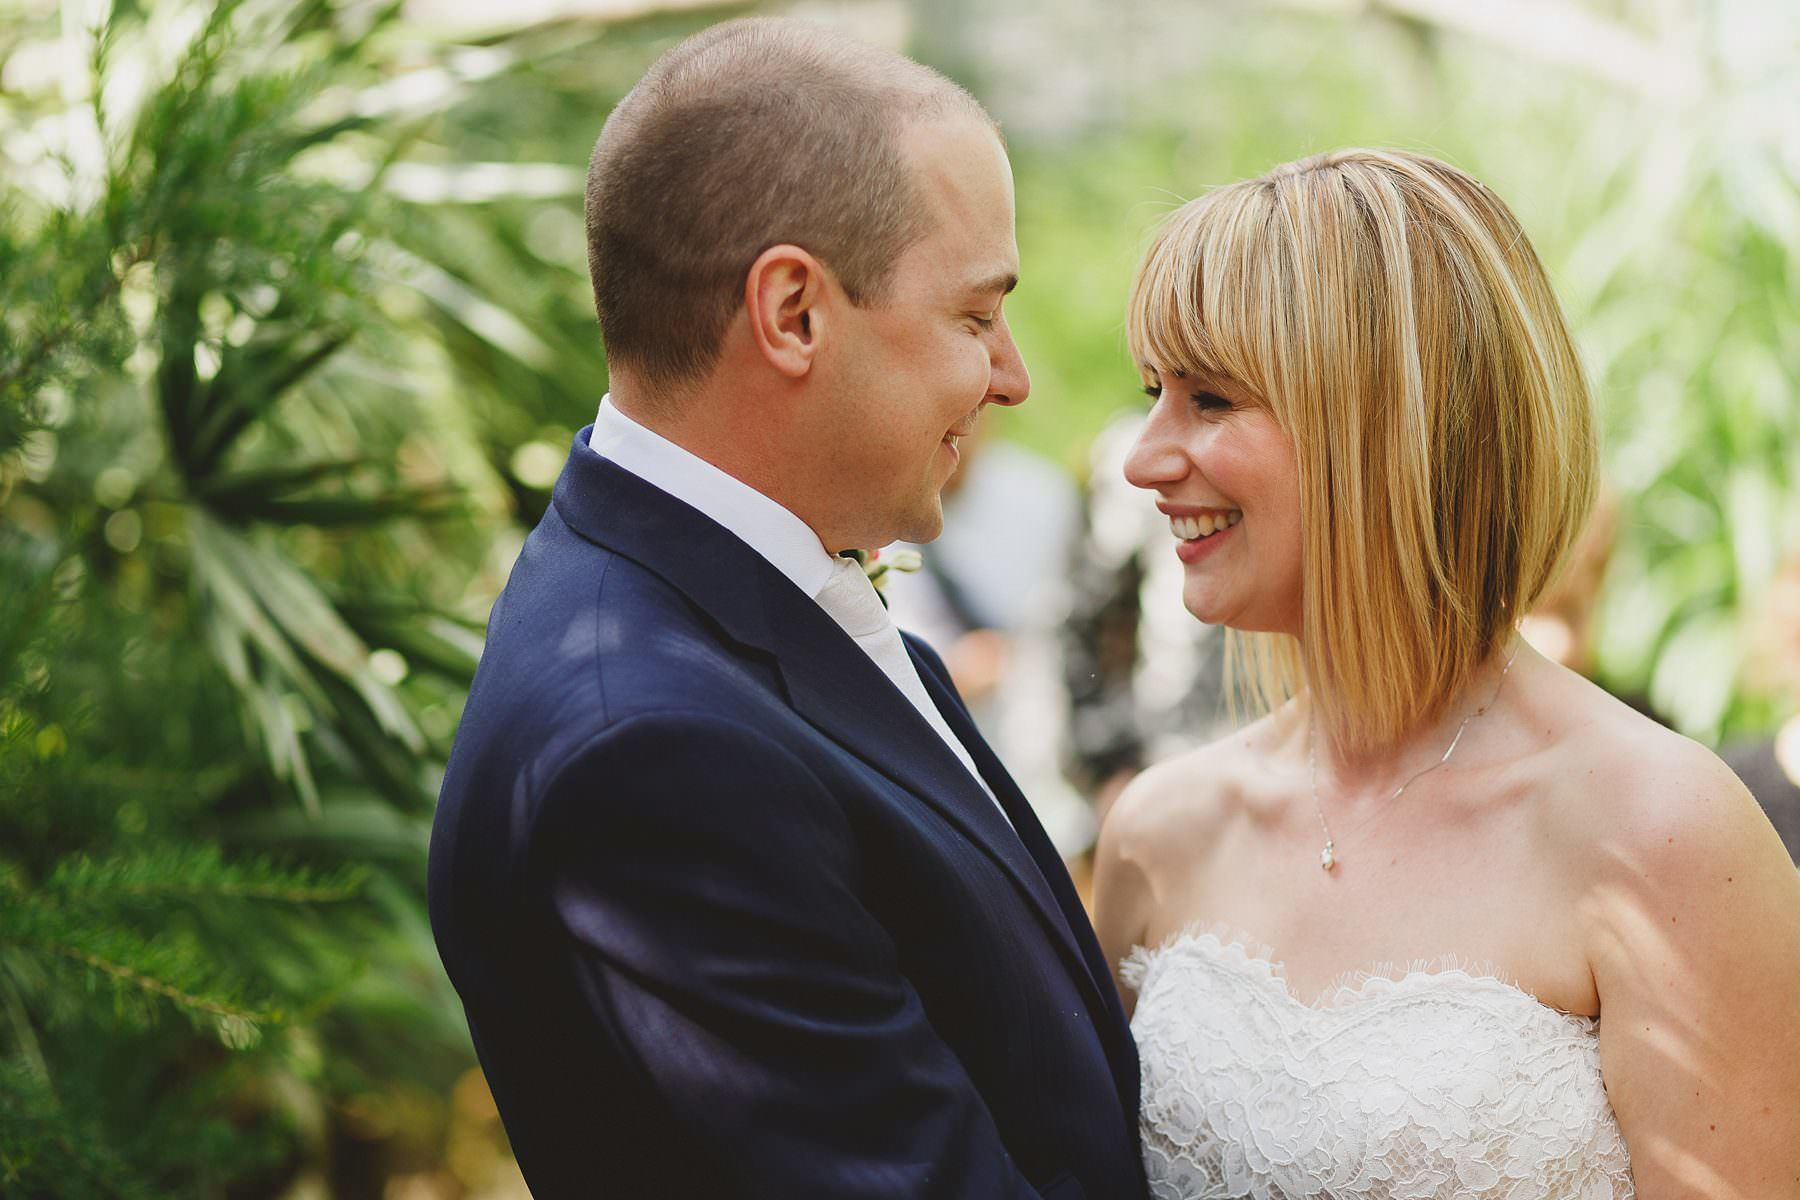 weddings-at-bristol-zoo-012